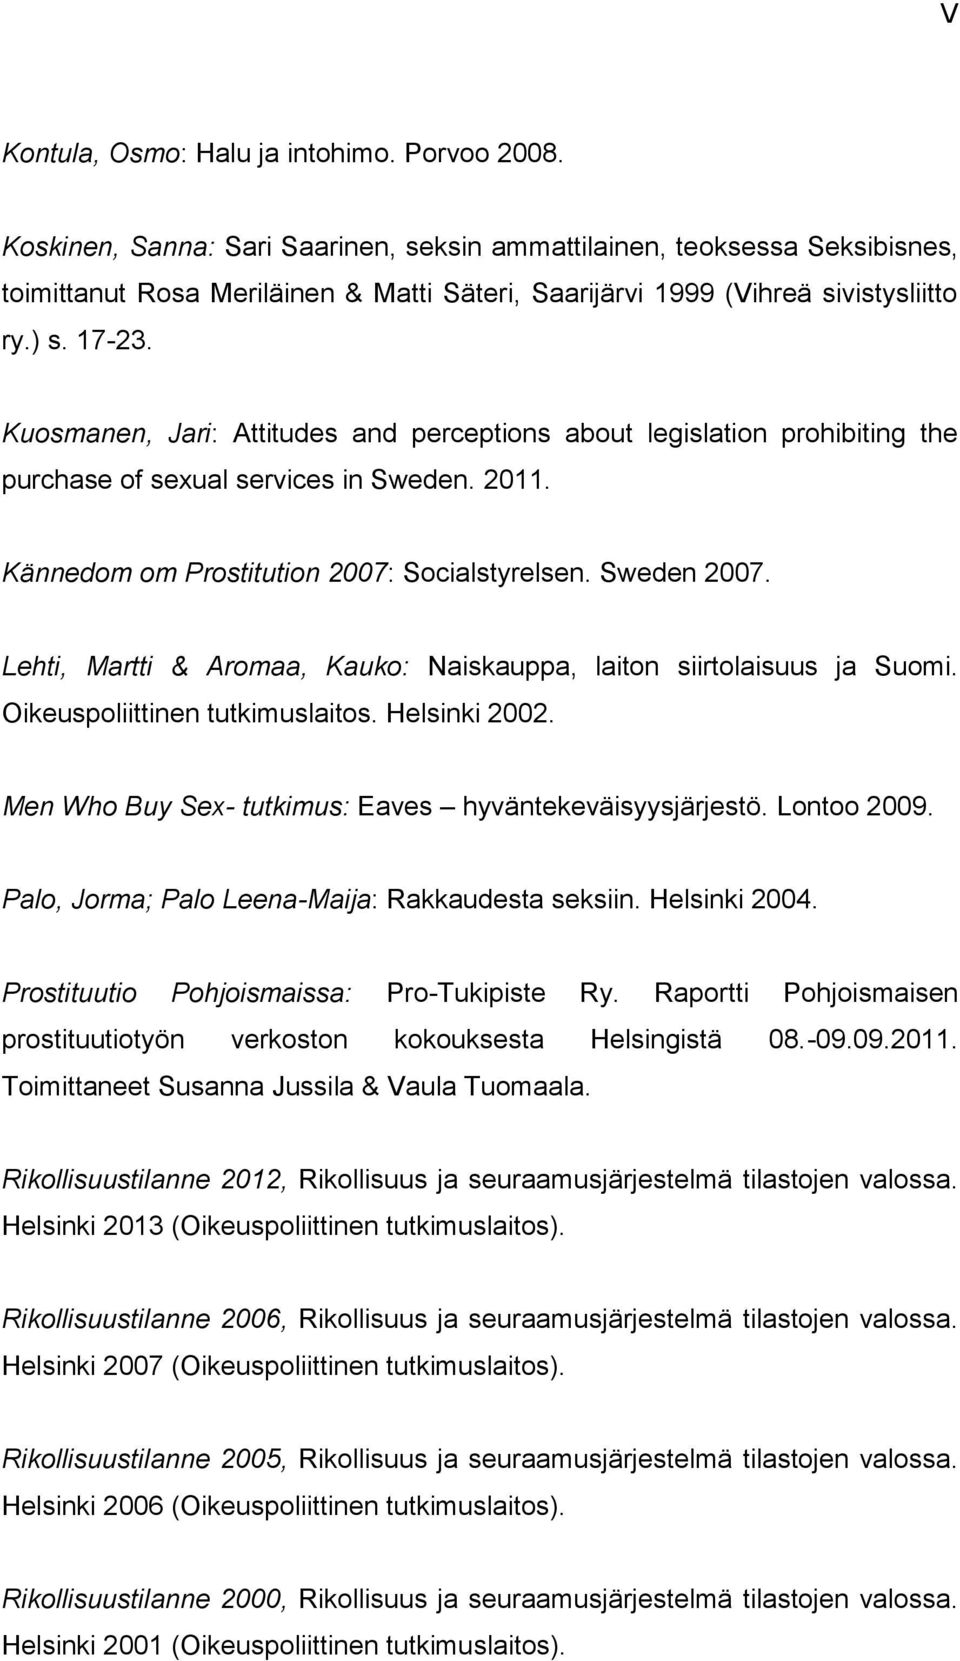 Kuosmanen, Jari: Attitudes and perceptions about legislation prohibiting the purchase of sexual services in Sweden. 2011. Kännedom om Prostitution 2007: Socialstyrelsen. Sweden 2007.